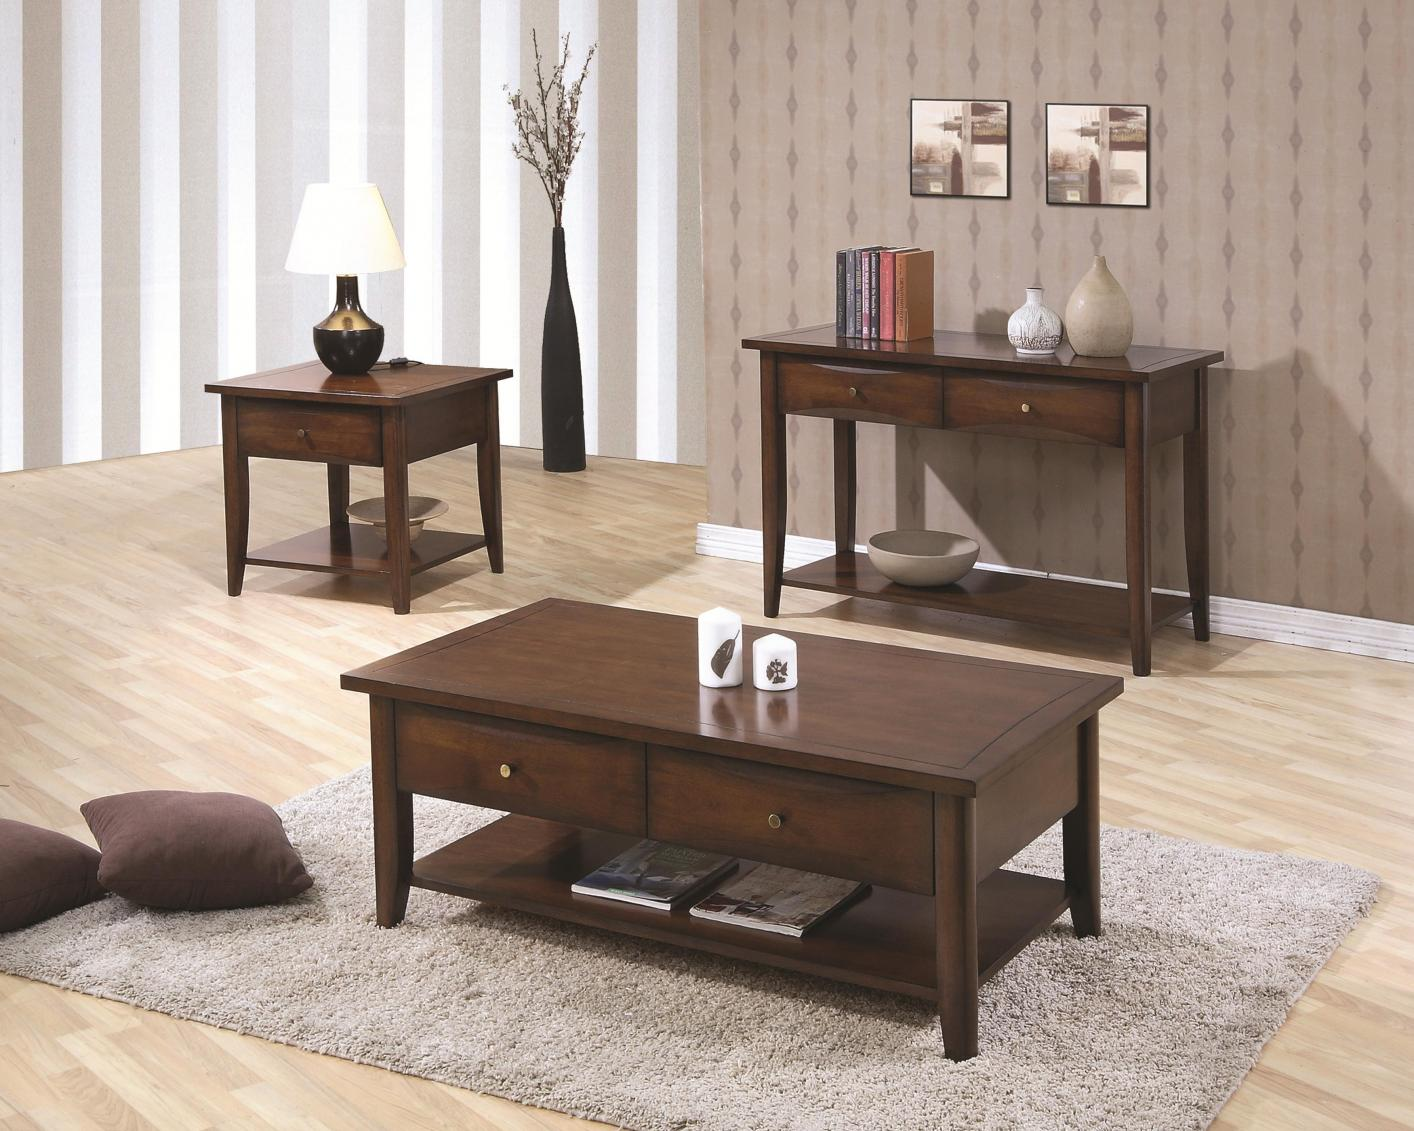 bentley brown wood coffee table 44 Coaster Coffee Table With Storage Drawers